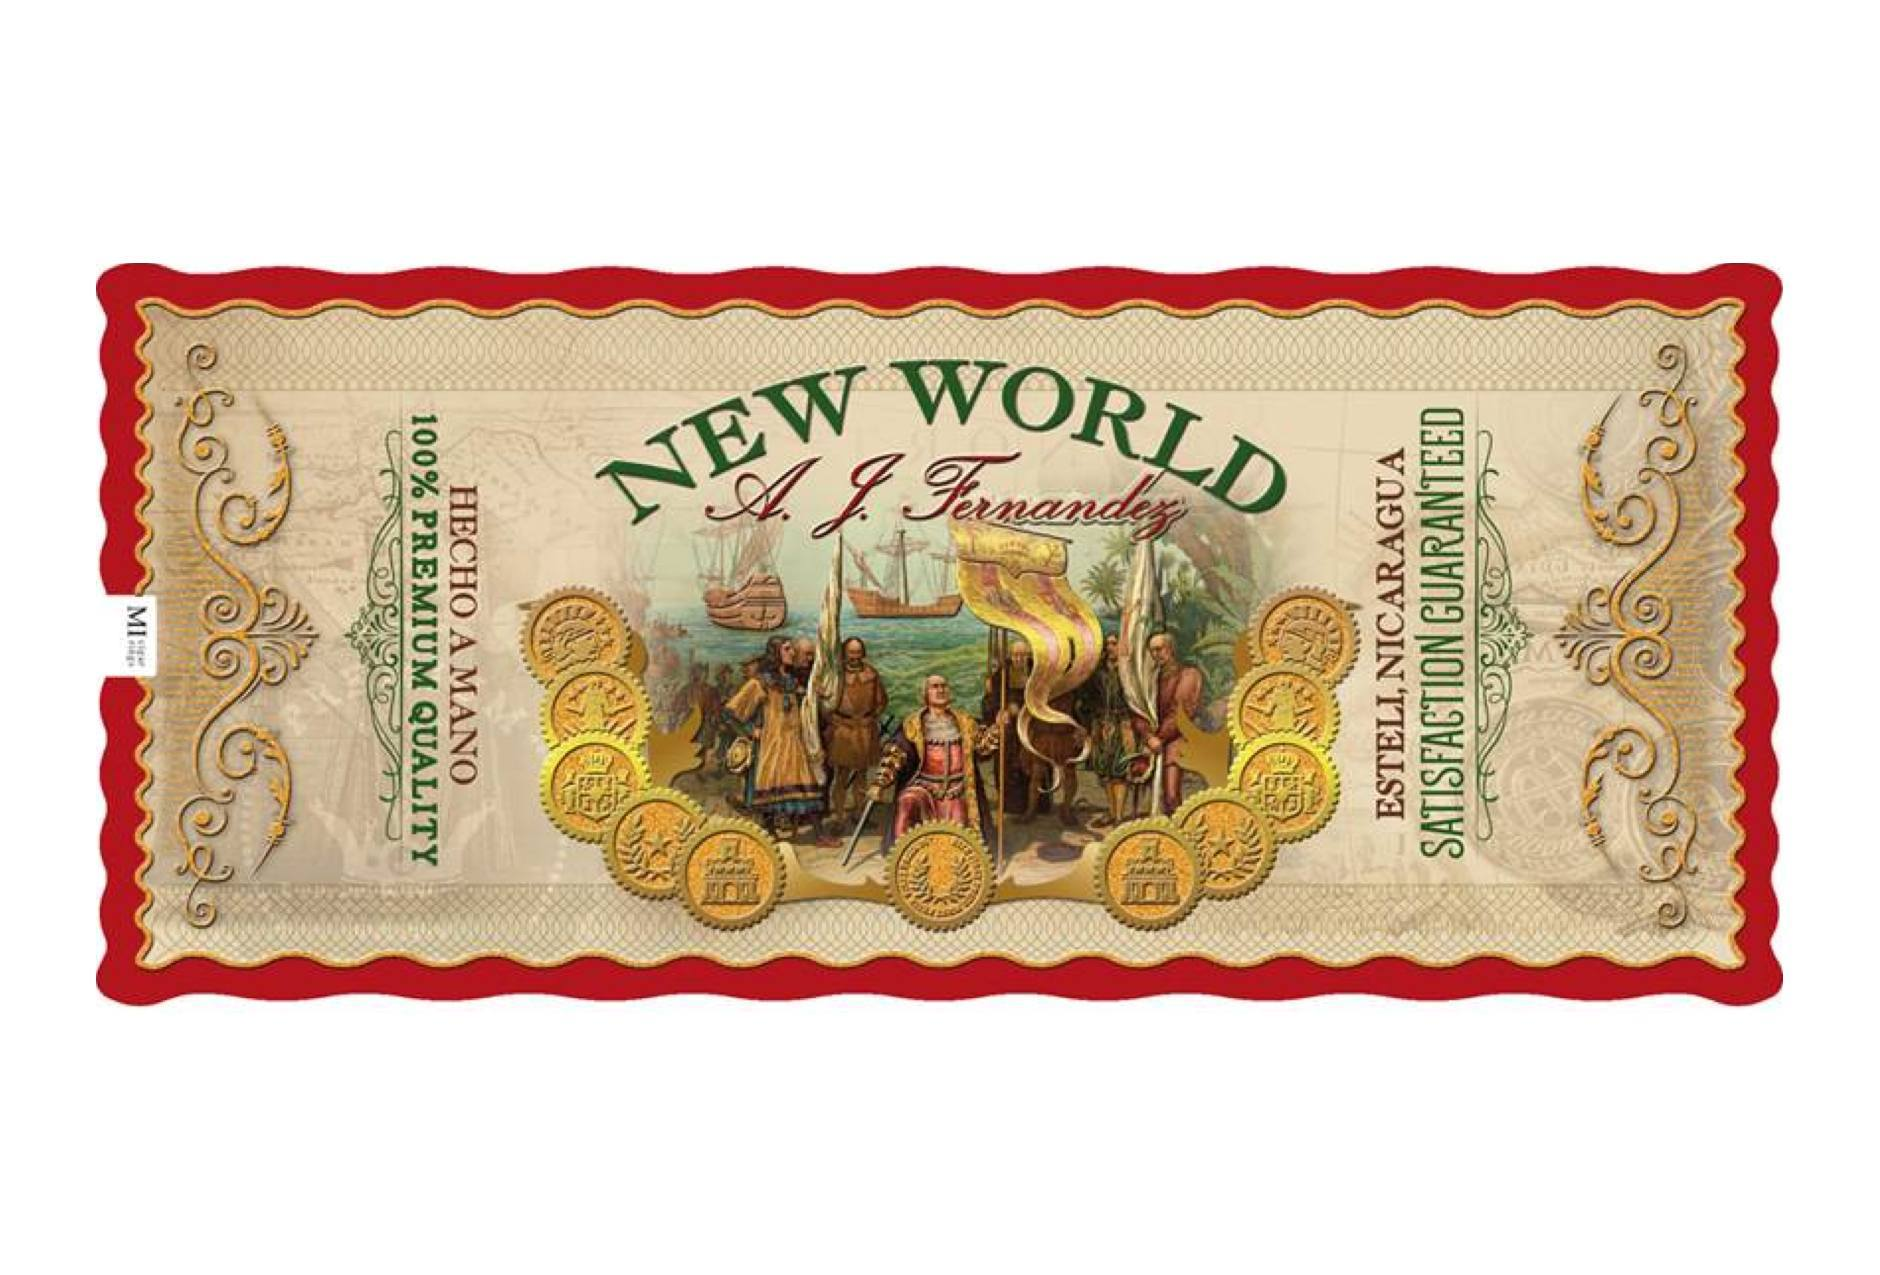 new world gordo cigars seal image